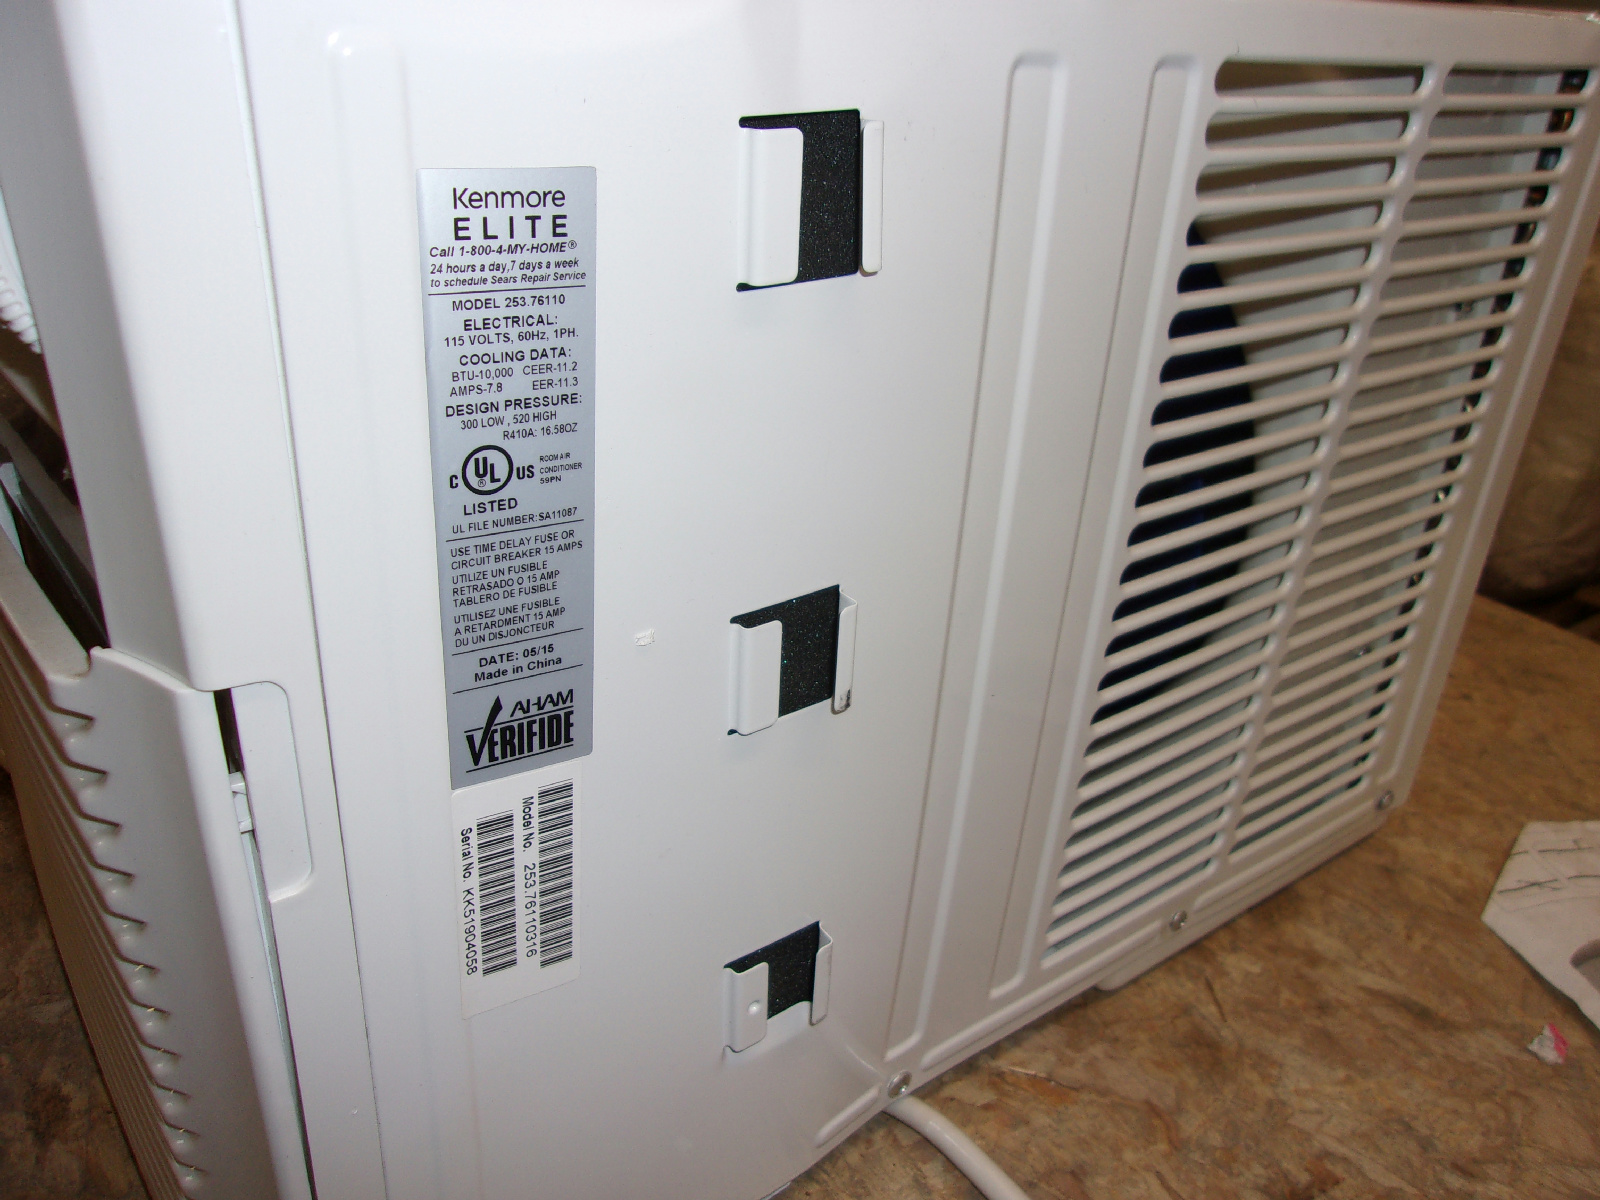 #684A30 Kenmore 10 000 BTU 115V Window Mounted Mini Compact Air  Reliable 12728 Kenmore 10000 Btu Portable Air Conditioner wallpaper with 1600x1200 px on helpvideos.info - Air Conditioners, Air Coolers and more